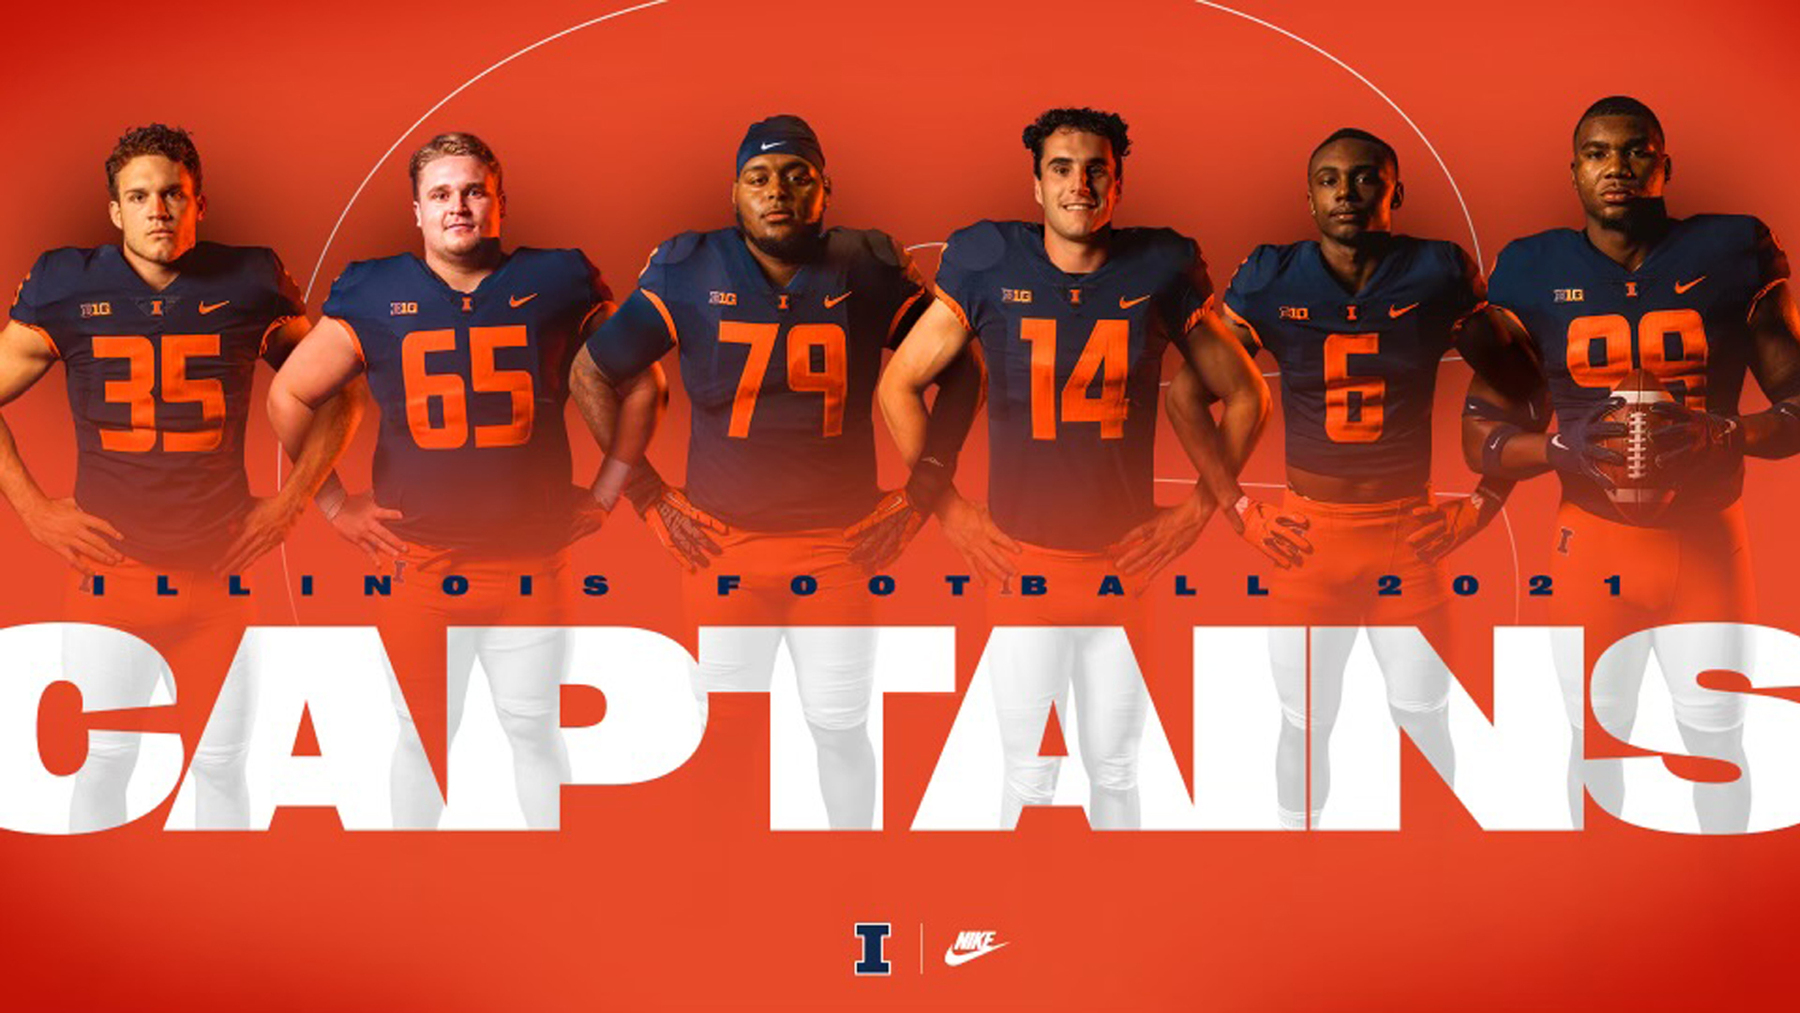 compiled image of the six team captains in uniform